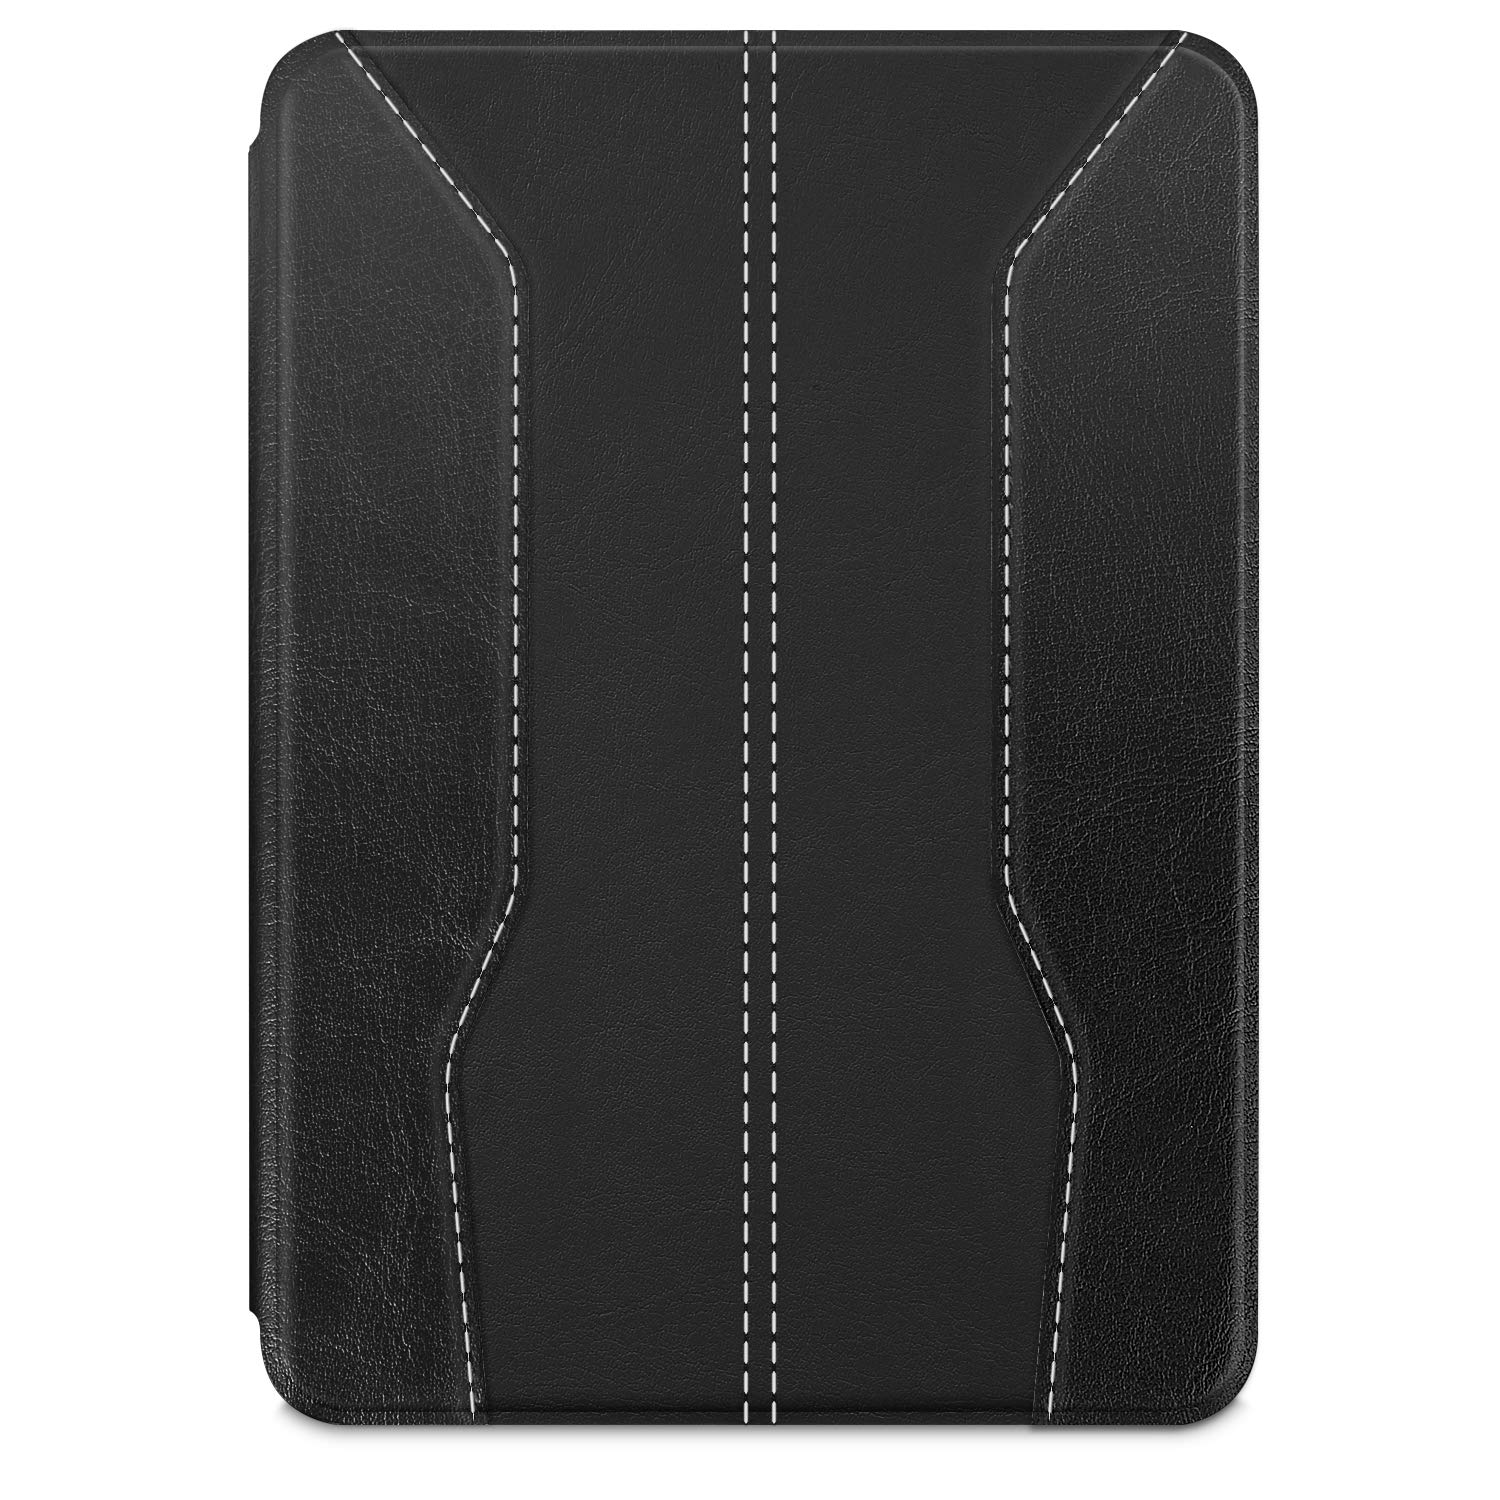 Fintie Slimshell Case for All-New Kindle (10th Gen, 2019 Release) - Lightweight Premium PU Leather Protective Cover with Auto Sleep/Wake (NOT Fit Kindle Paperwhite or Kindle 8th Gen), Matte Black